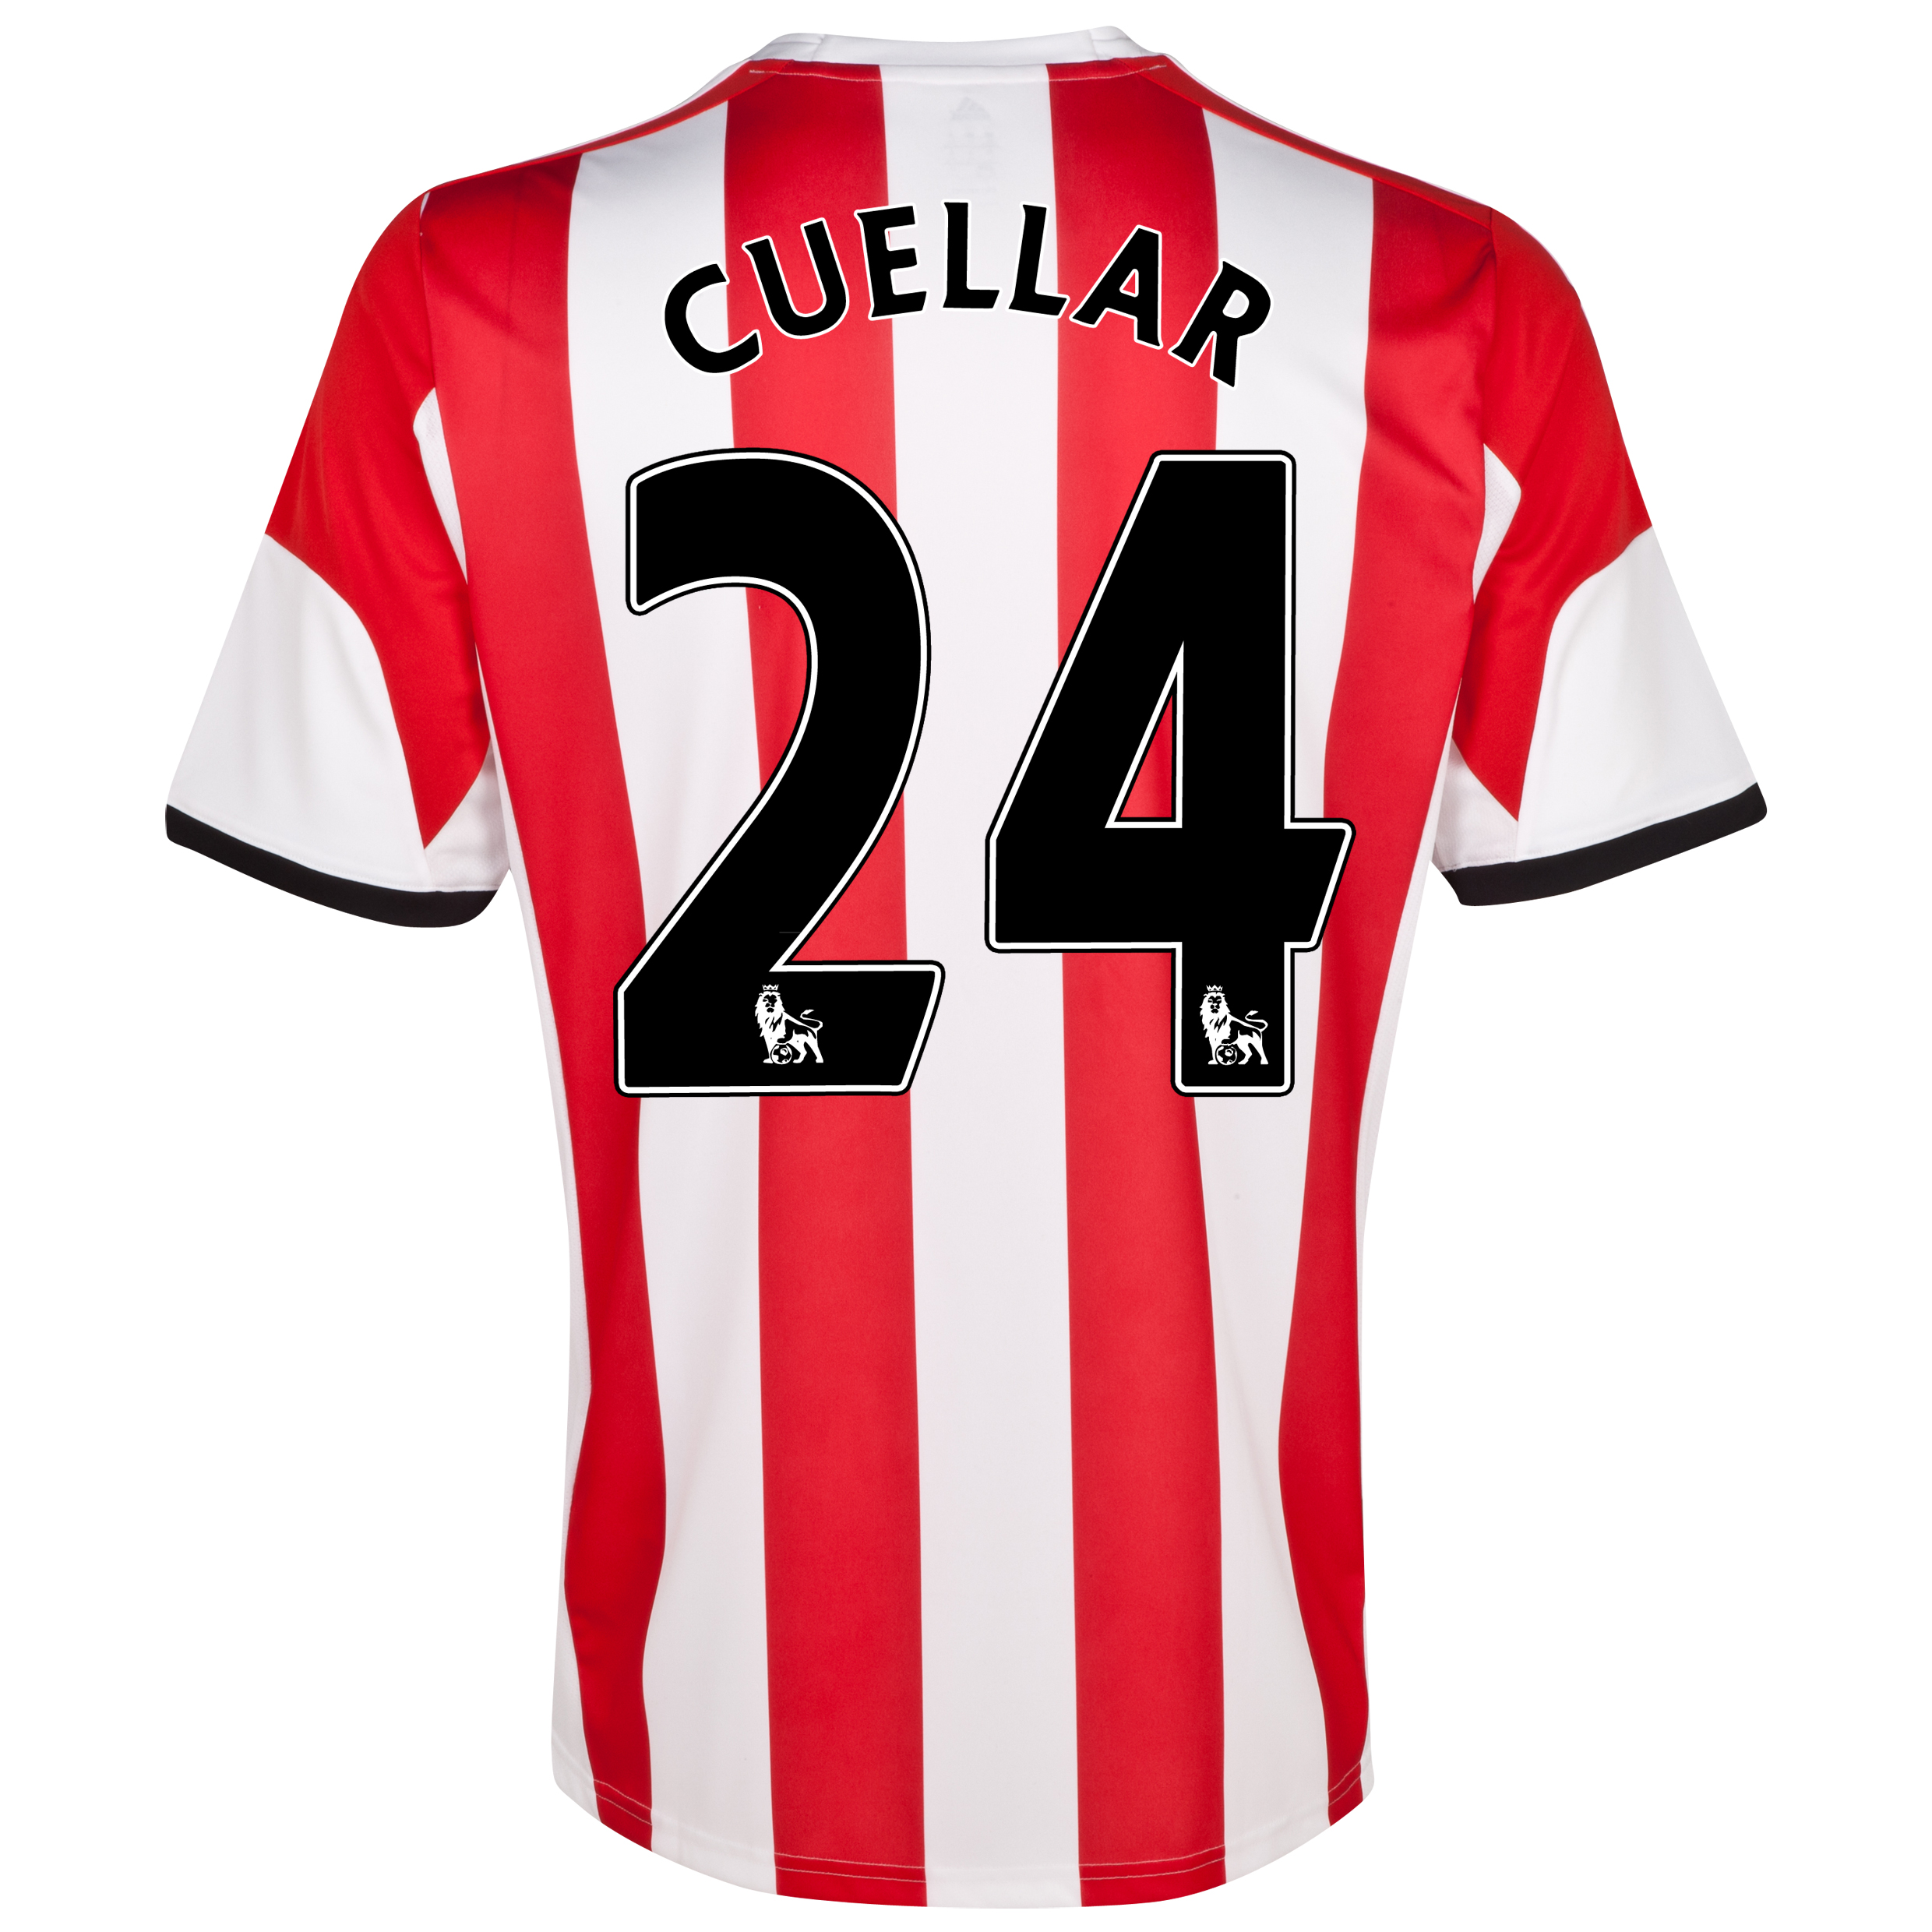 Sunderland Home Shirt 2013/14 - Junior with Cuellar 24 printing